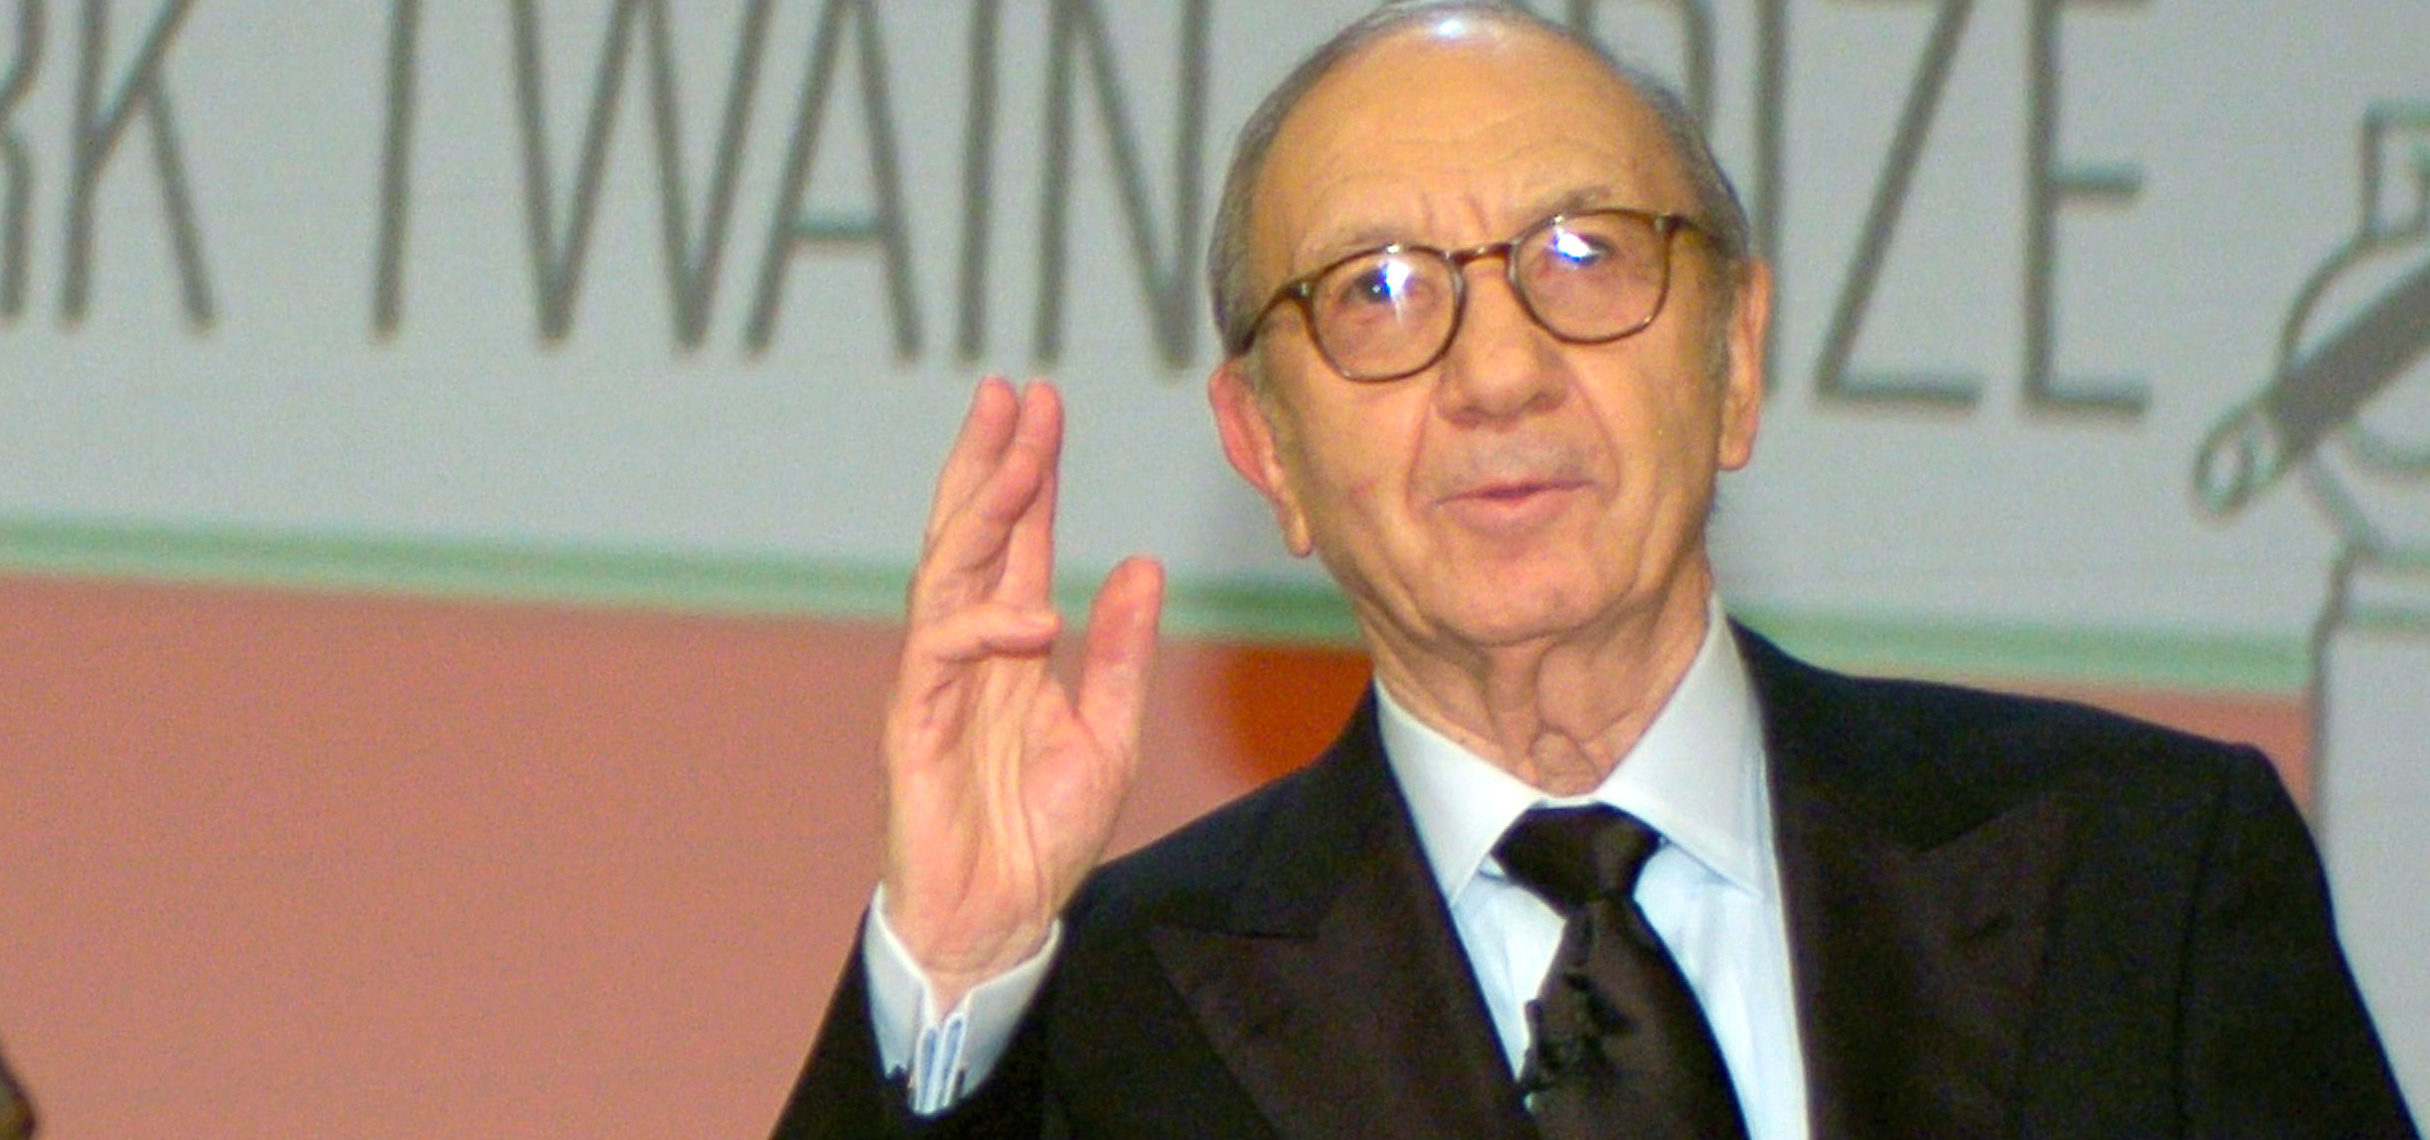 FILE PHOTO: Playwright Neil Simon accepts the 2006 Mark Twain Prize at the Kennedy Center in Washington, October 15, 2006. REUTERS/Mike Theiler